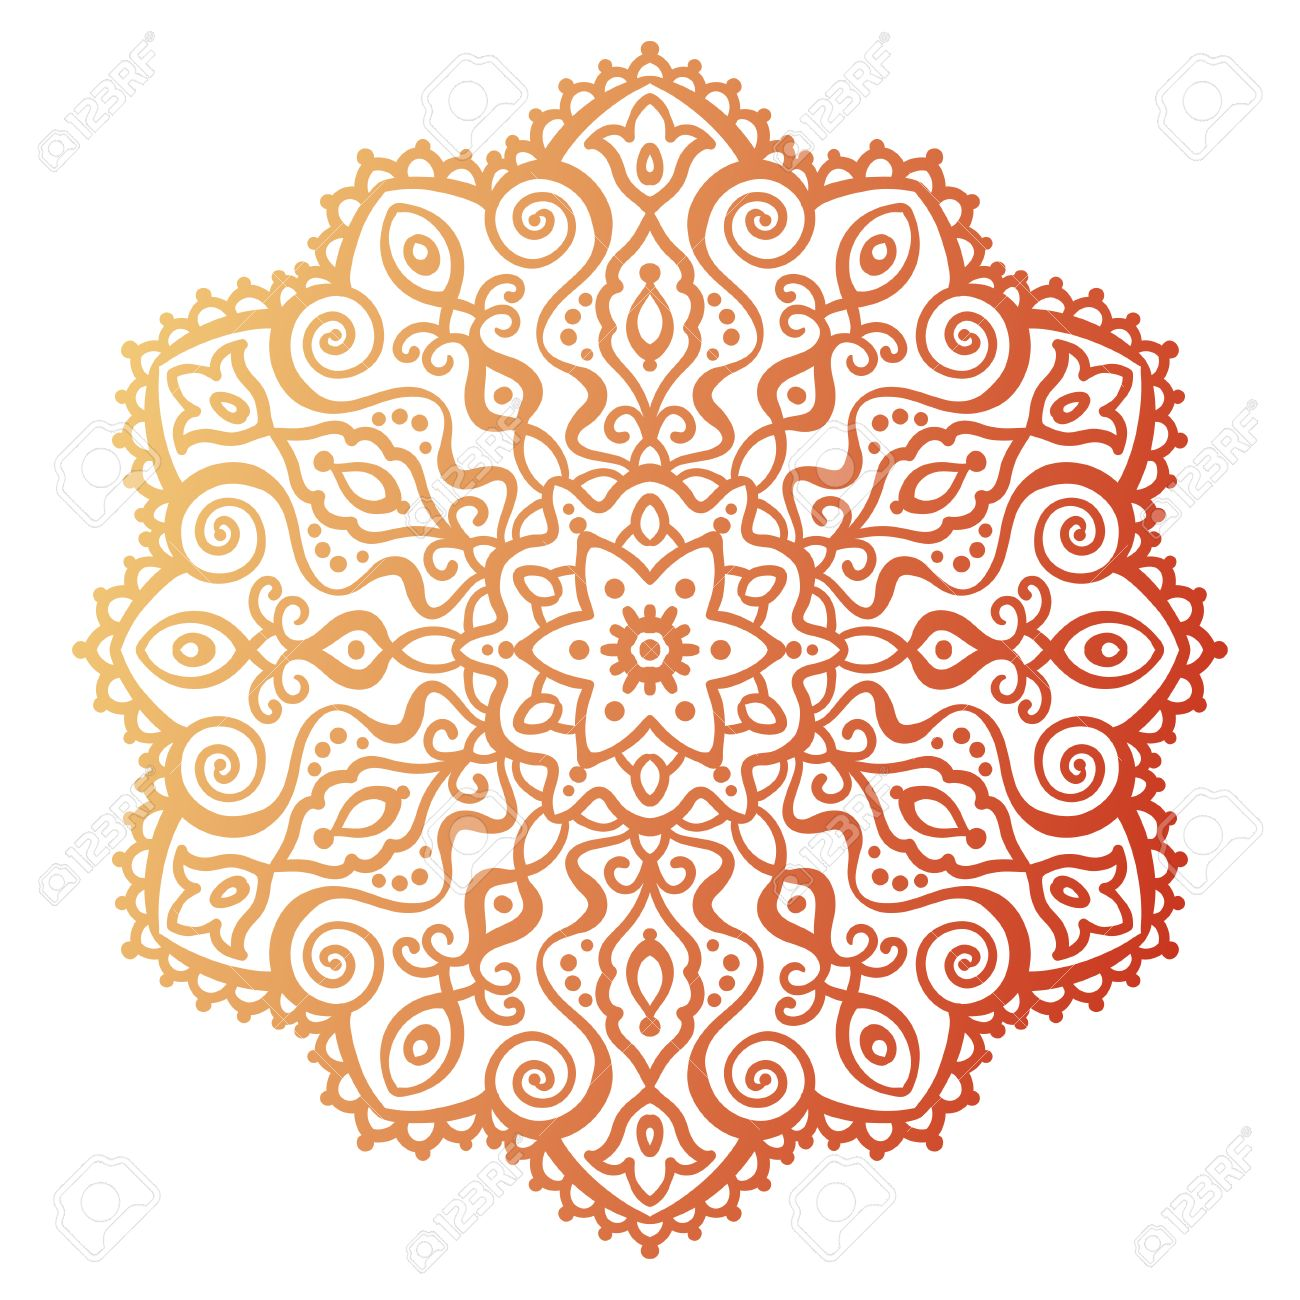 Vector illustration outline mandala abstract element for design east doodle